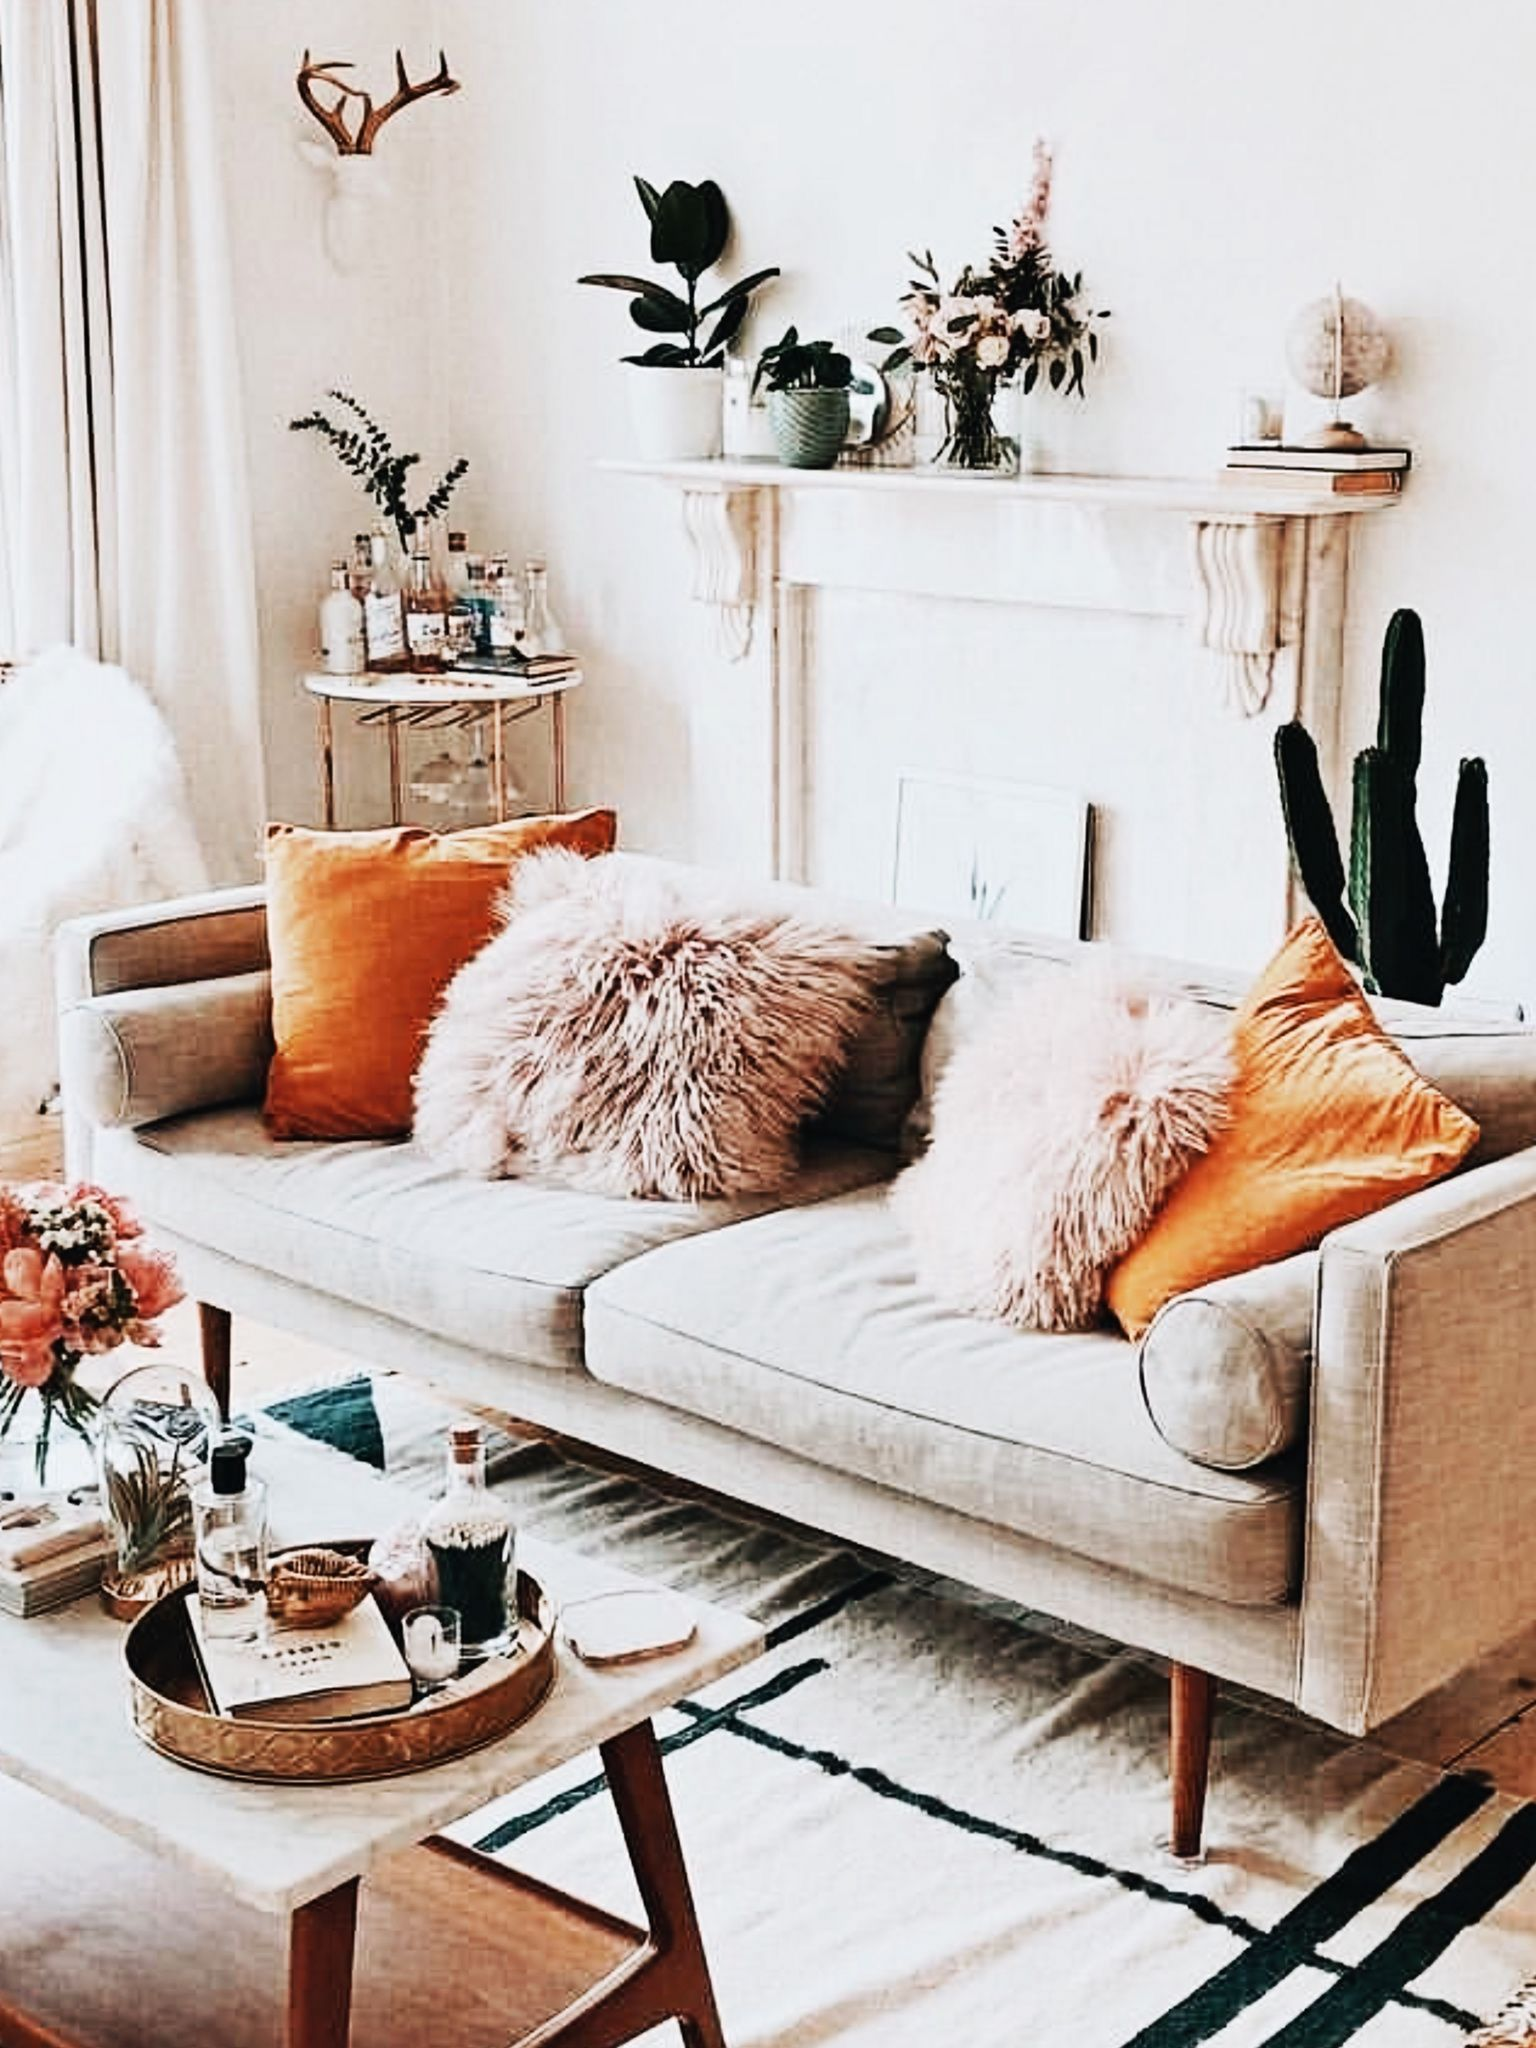 Impressive 30 Charming Living Room Design With Orange Color Themes https://decoor.net/30-charming-livin… | Living room orange, Living room designs, Boho living room